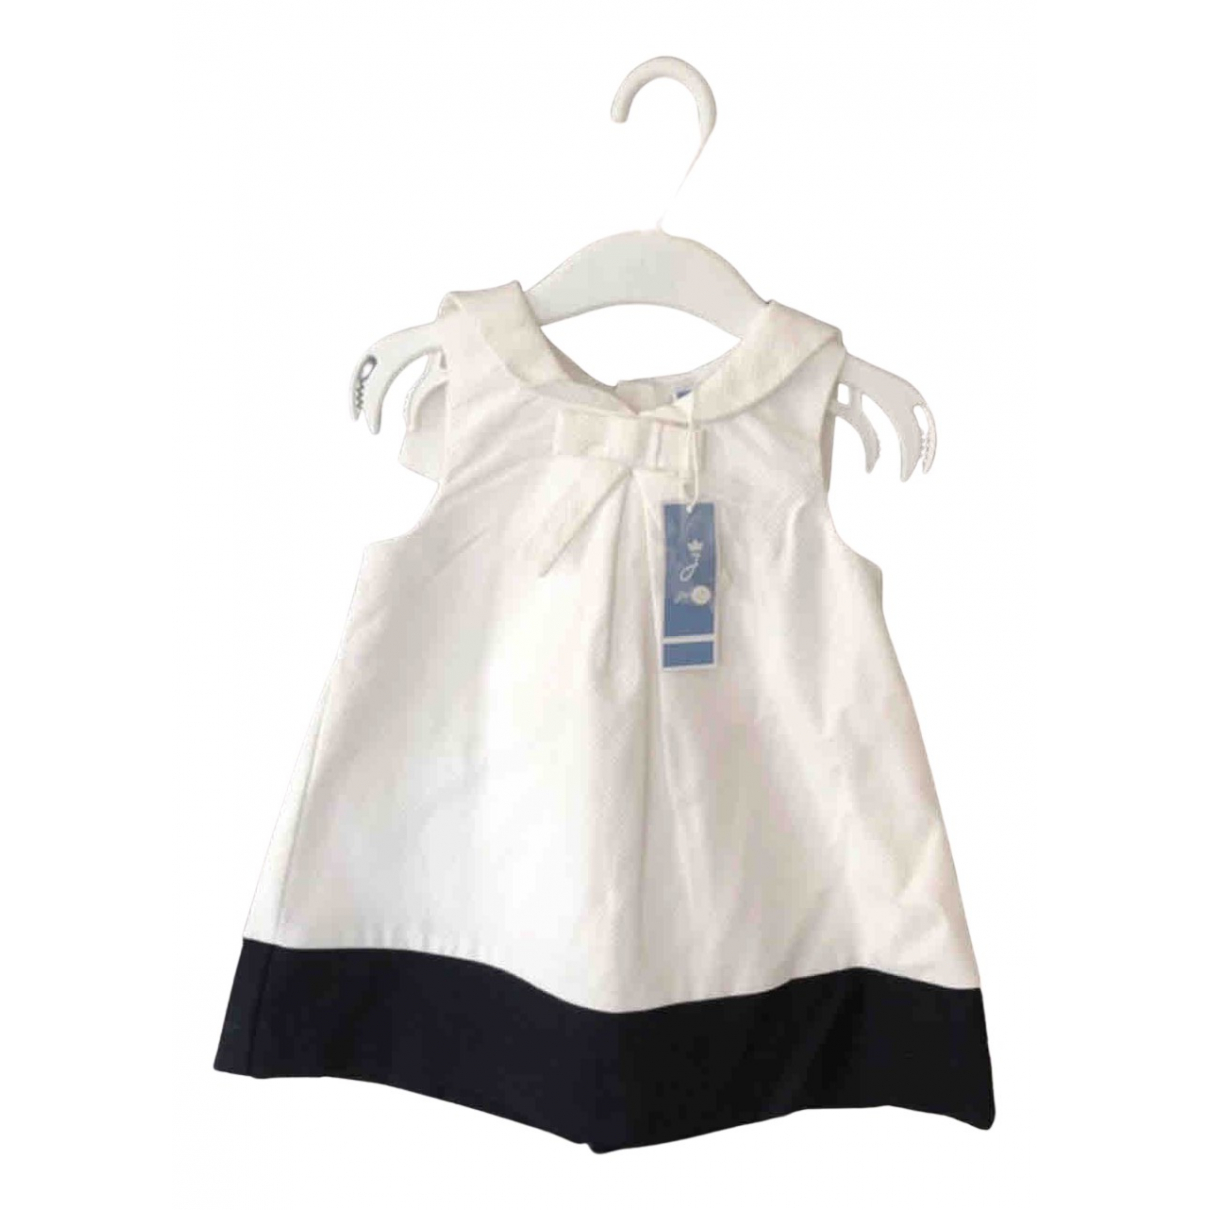 Jacadi N White Cotton dress for Kids 12 months - up to 74cm FR